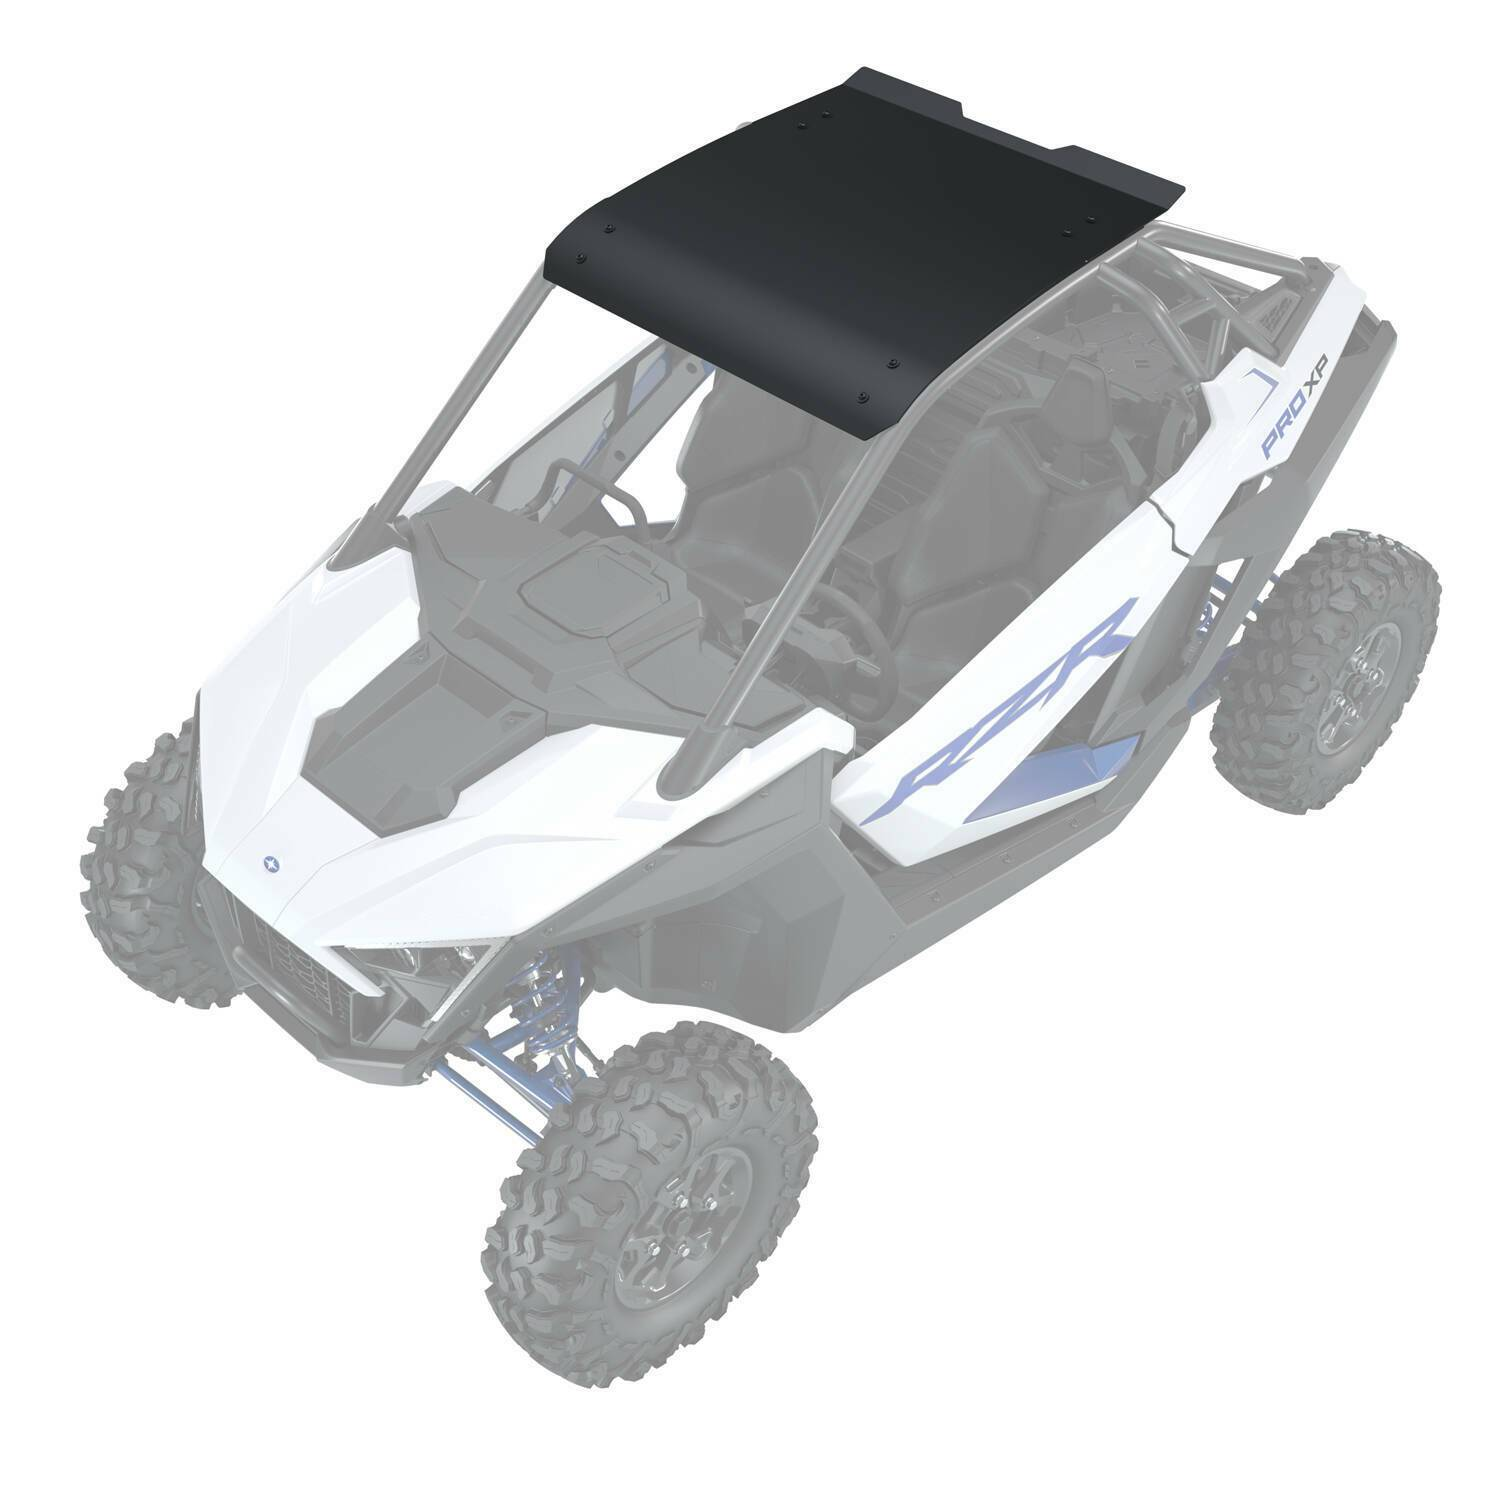 Polaris 2883743-458 Matte Black ABS Plastic Roof 2020 Pro Premium Ultimate RZR XP aftermarket replacement Vehicles & Parts > Vehicles > Motor Vehicles > Off-Road and All-Terrain Vehicles > ATVs & UTVs Polaris